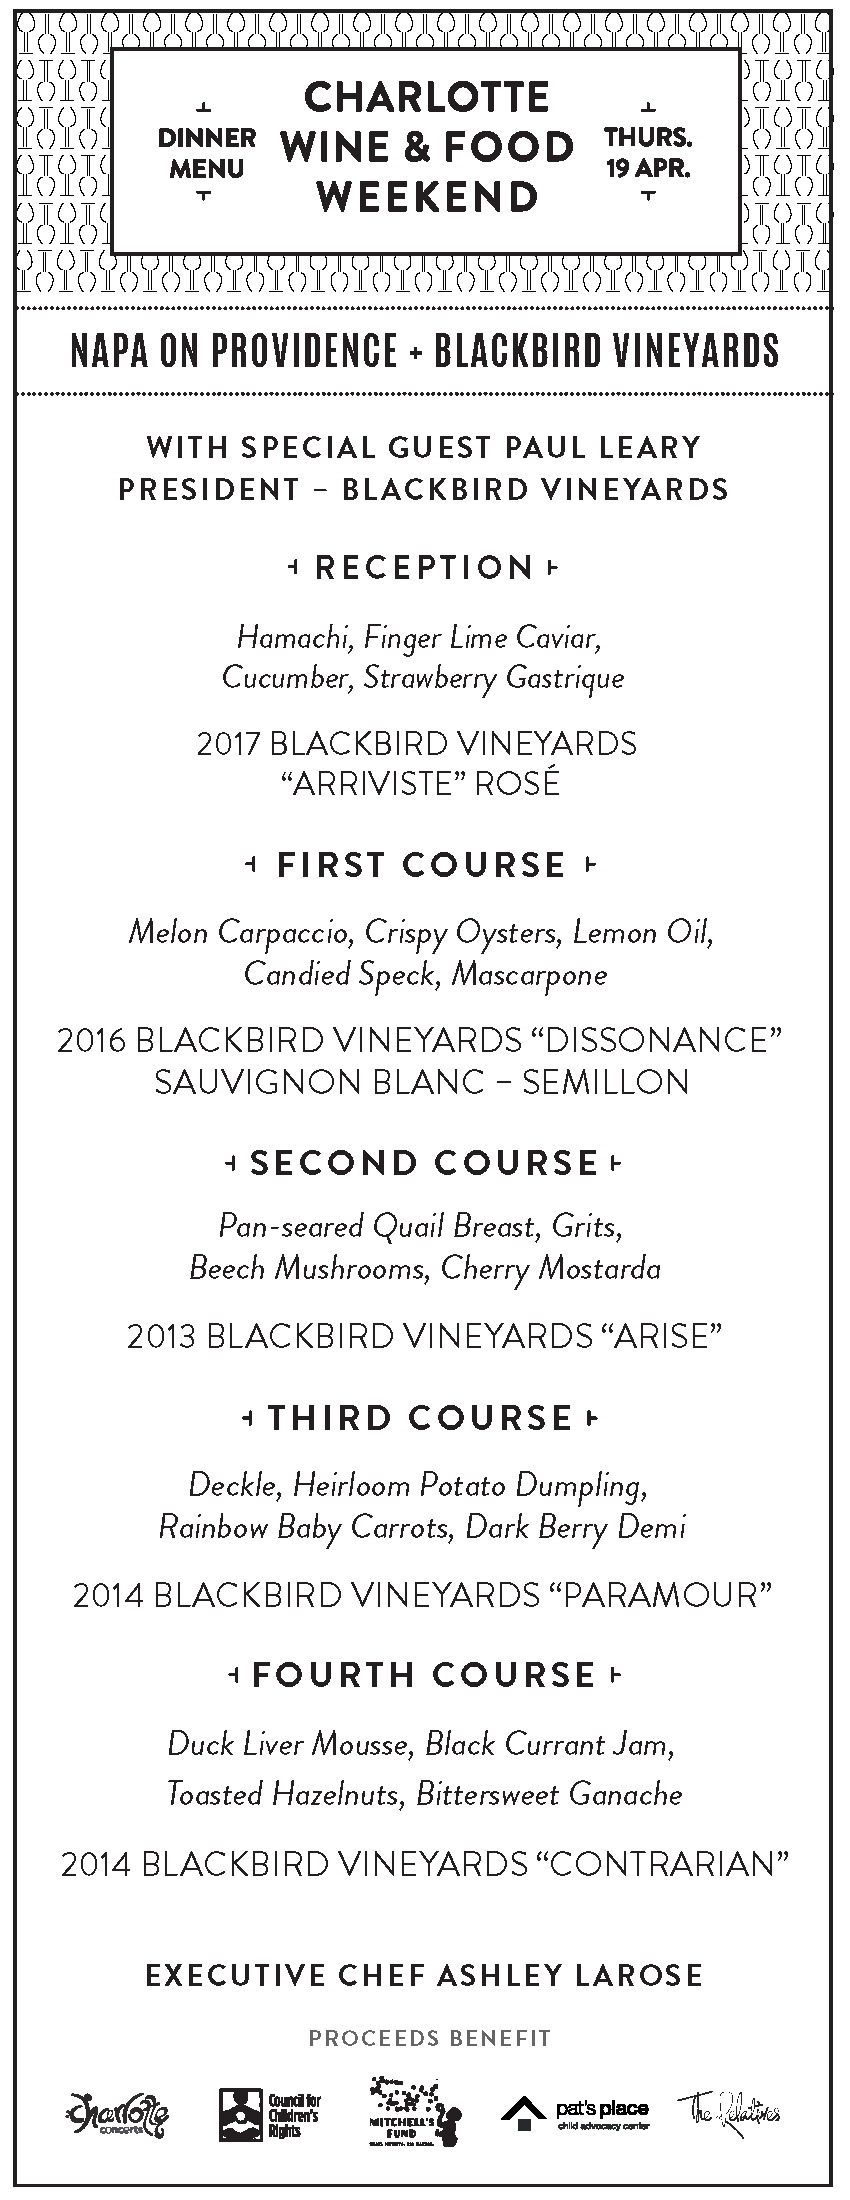 CWFW Restaurant Dinner Menu 2018_Blackbird.png